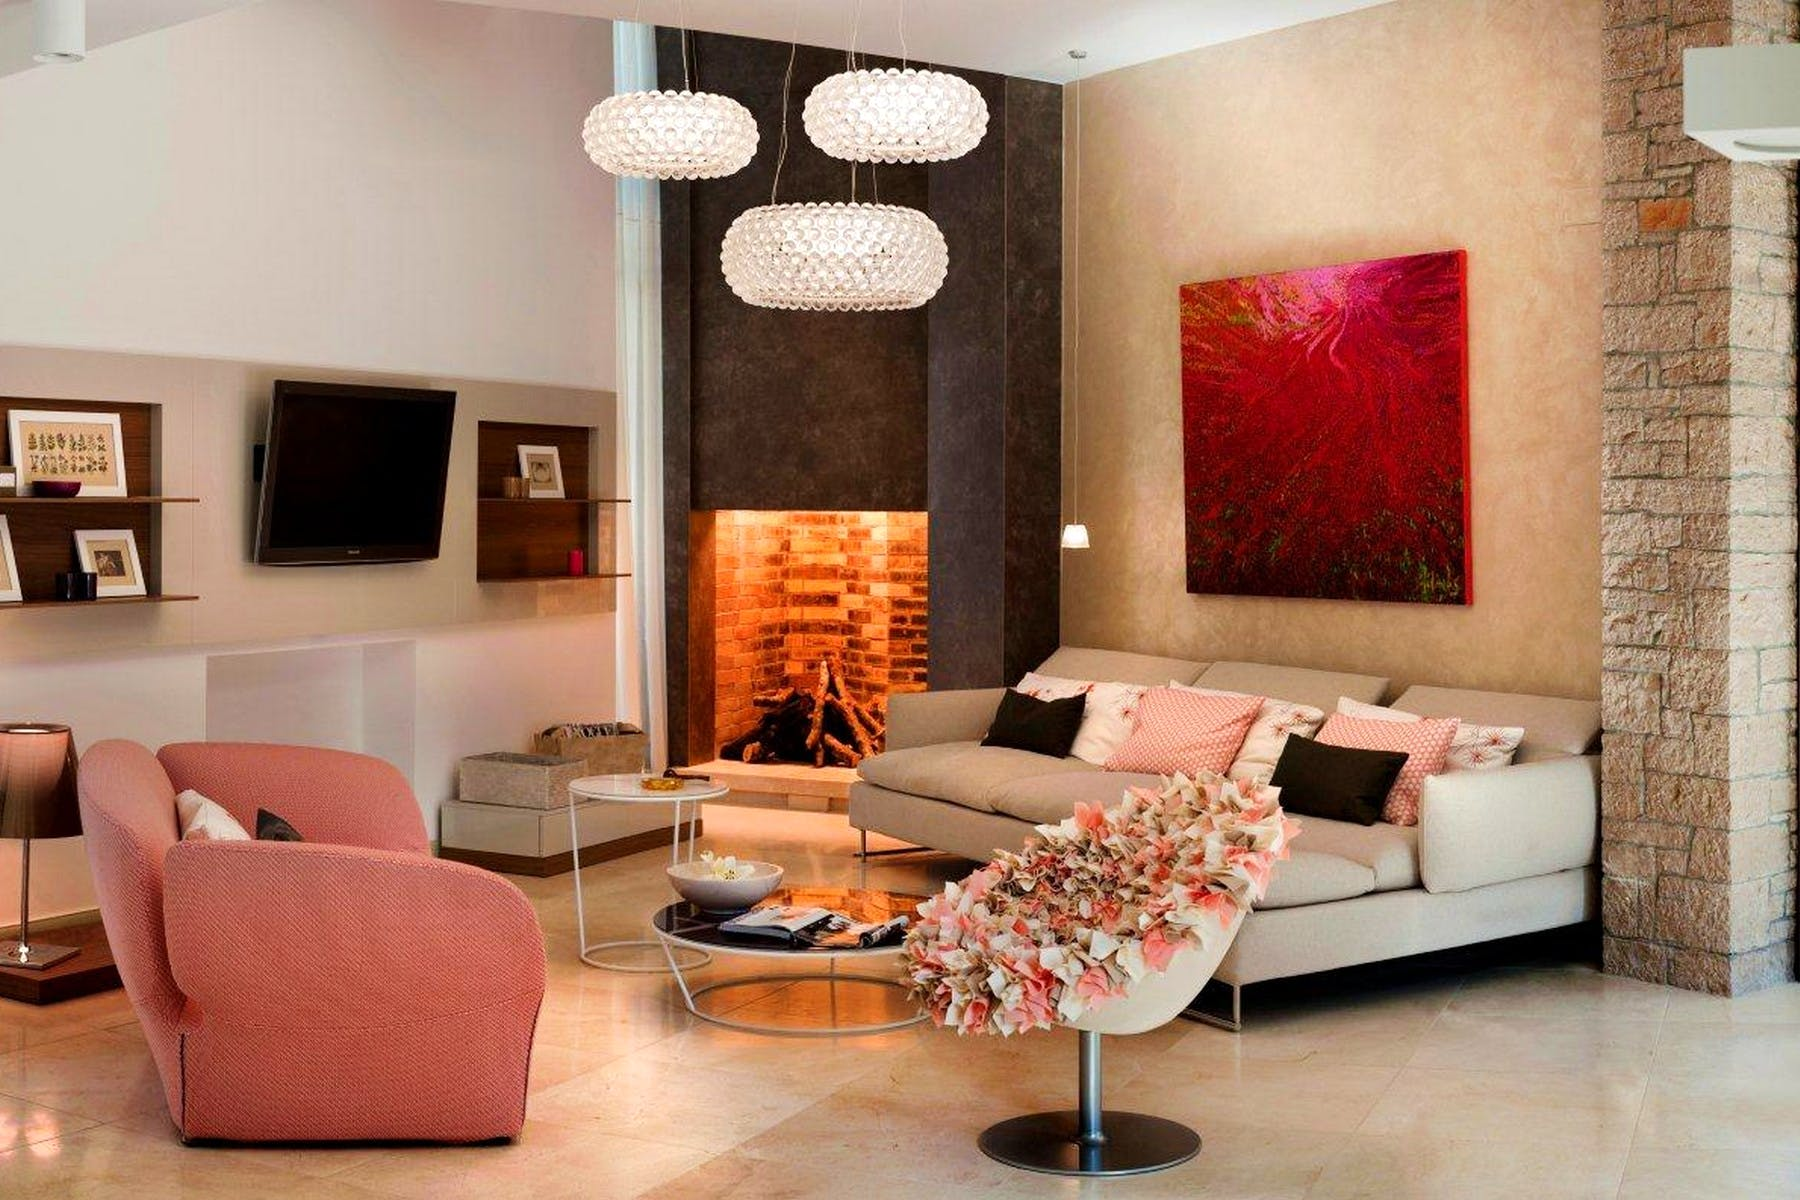 Living area with a fireplace